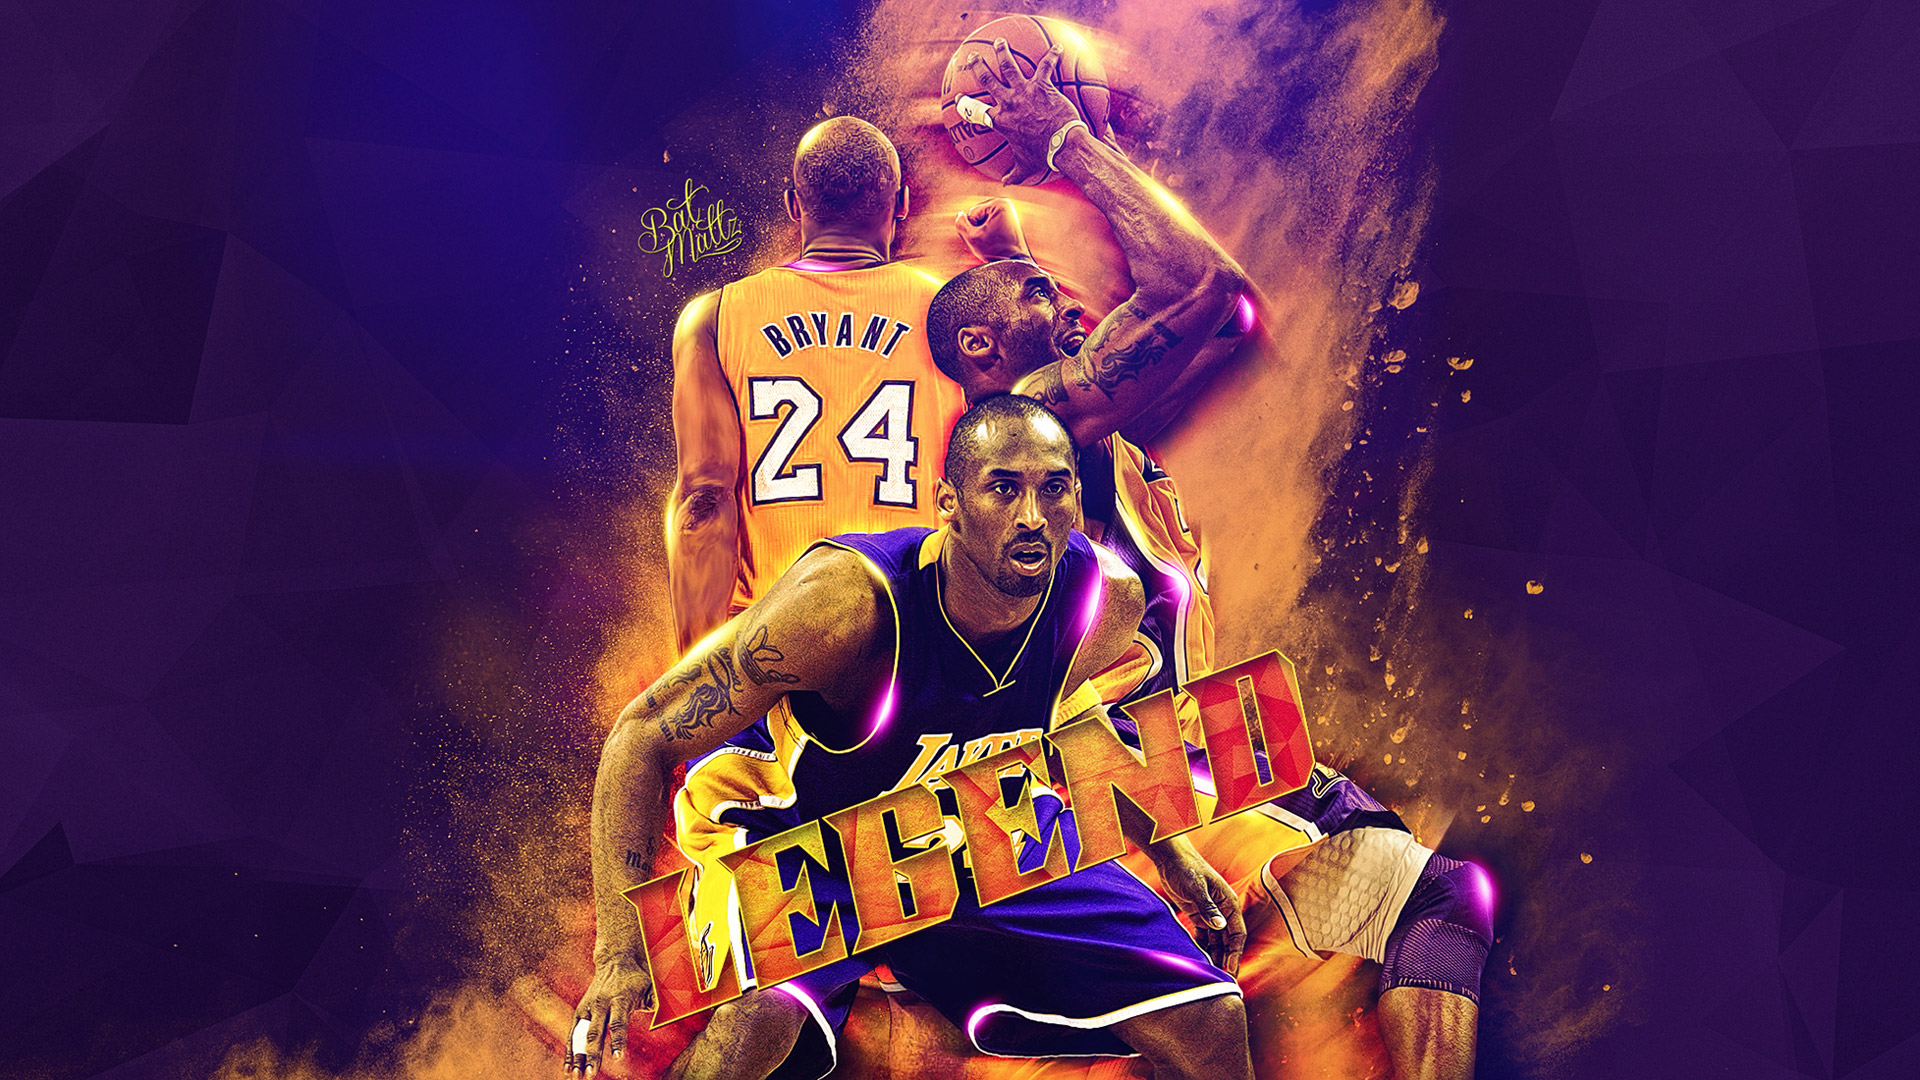 Kobe Bryant NBA Legend 1920x1080 Wallpaper